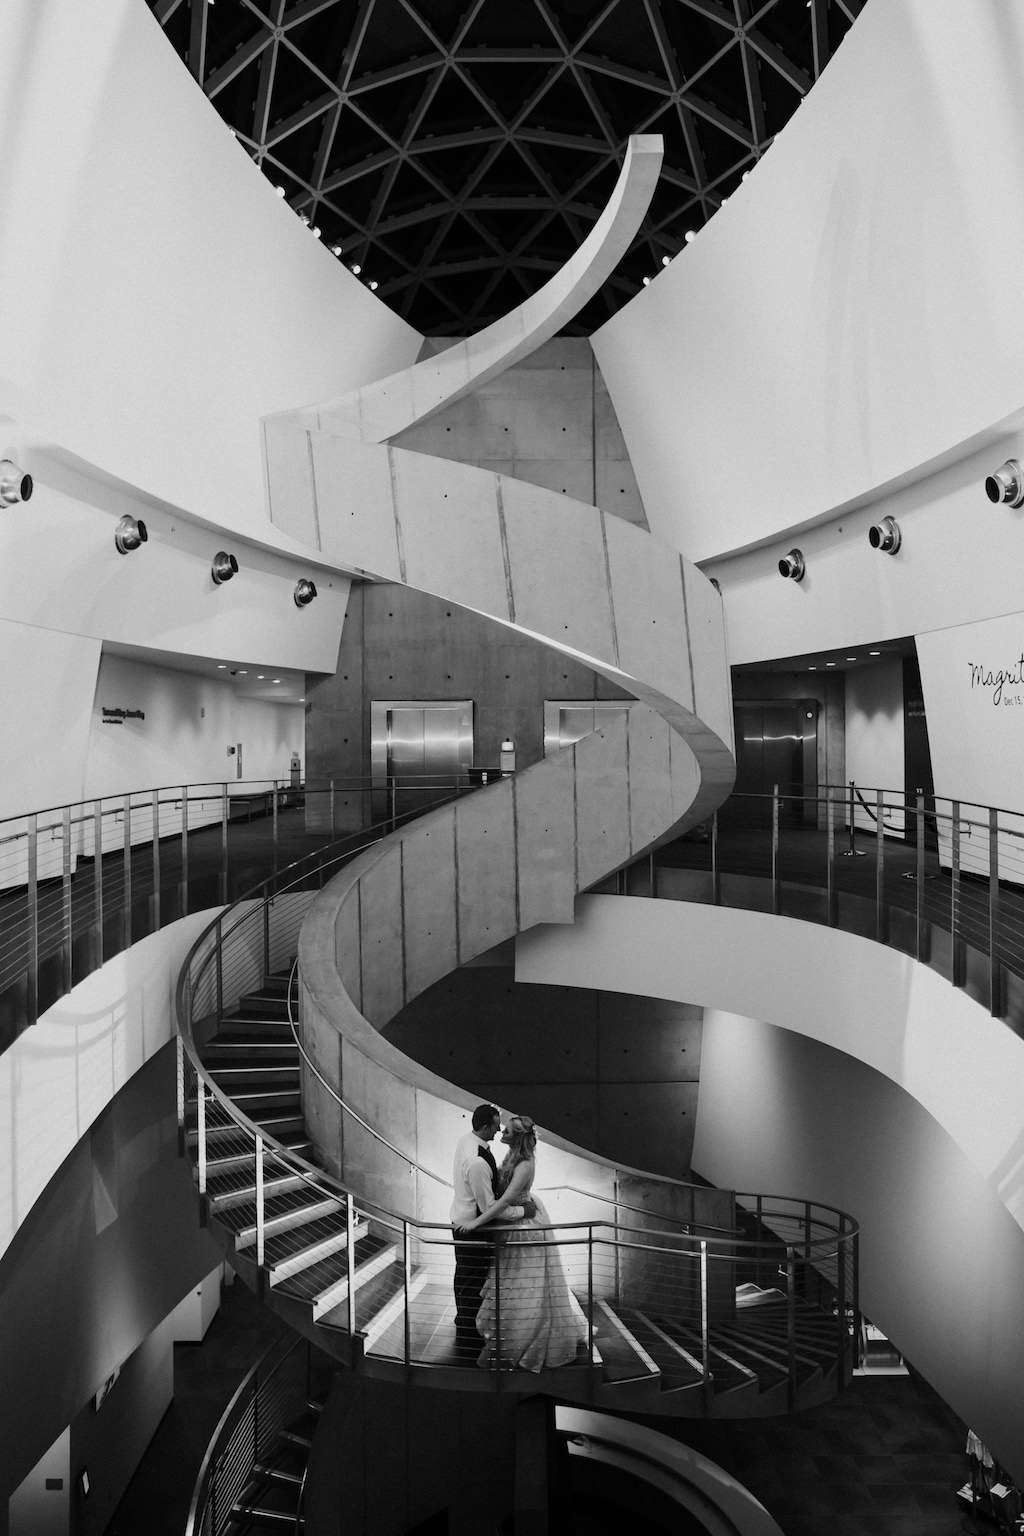 Black and White Tampa Bride and Groom Creative Wedding Portrait on Spiral Staircase | Downtown St. Pete Wedding Venue Salvador Dali Museum